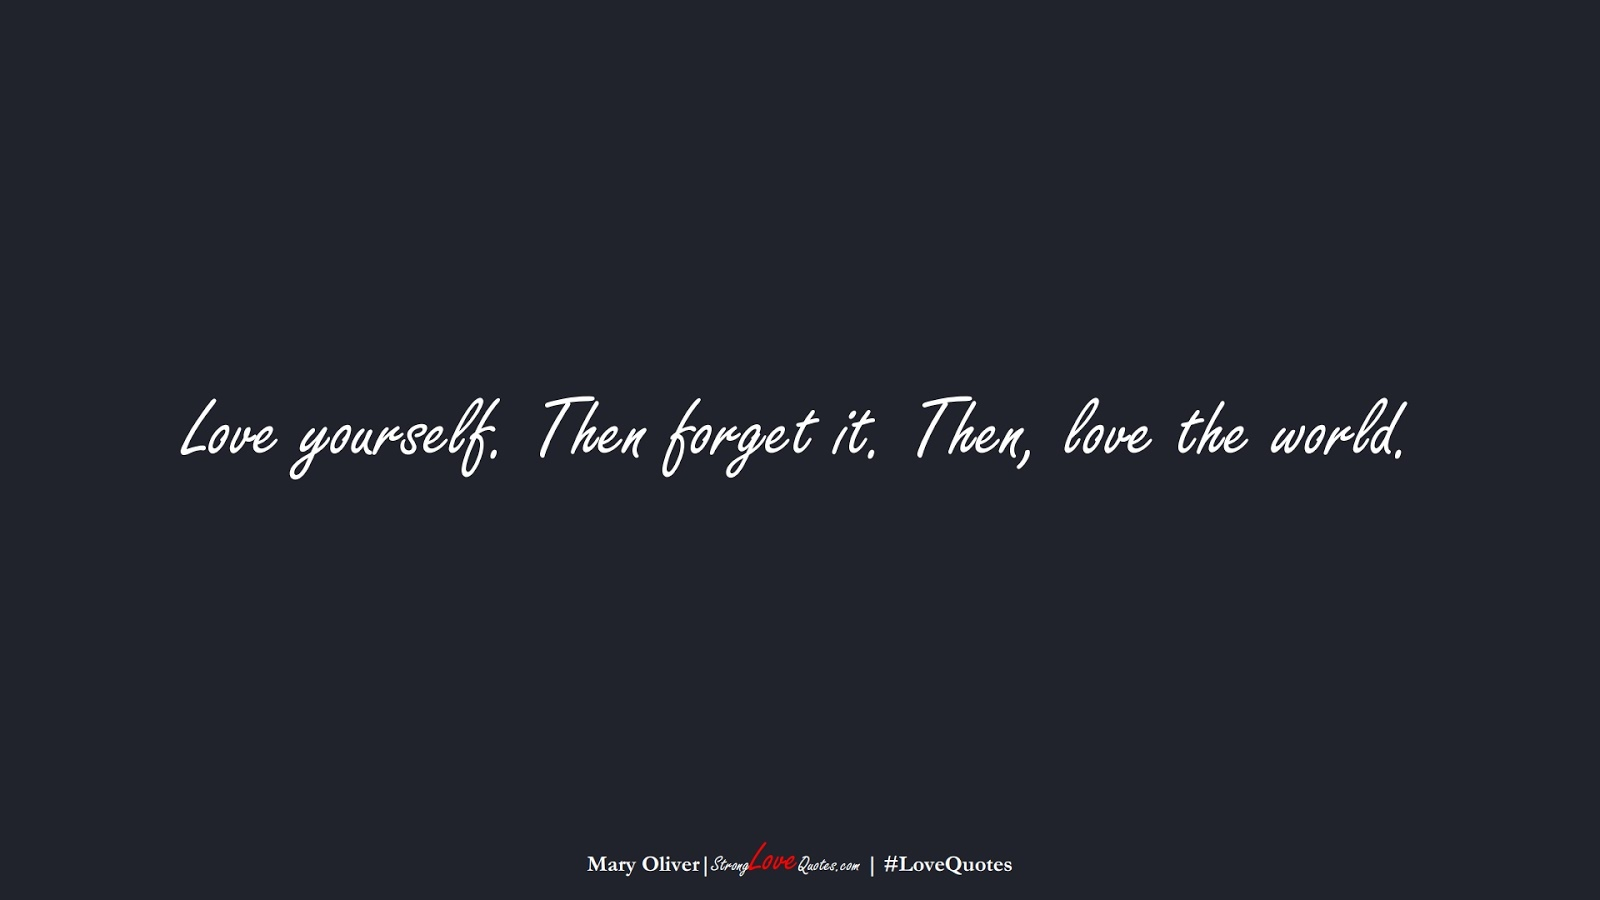 Love yourself. Then forget it. Then, love the world. (Mary Oliver);  #LoveQuotes